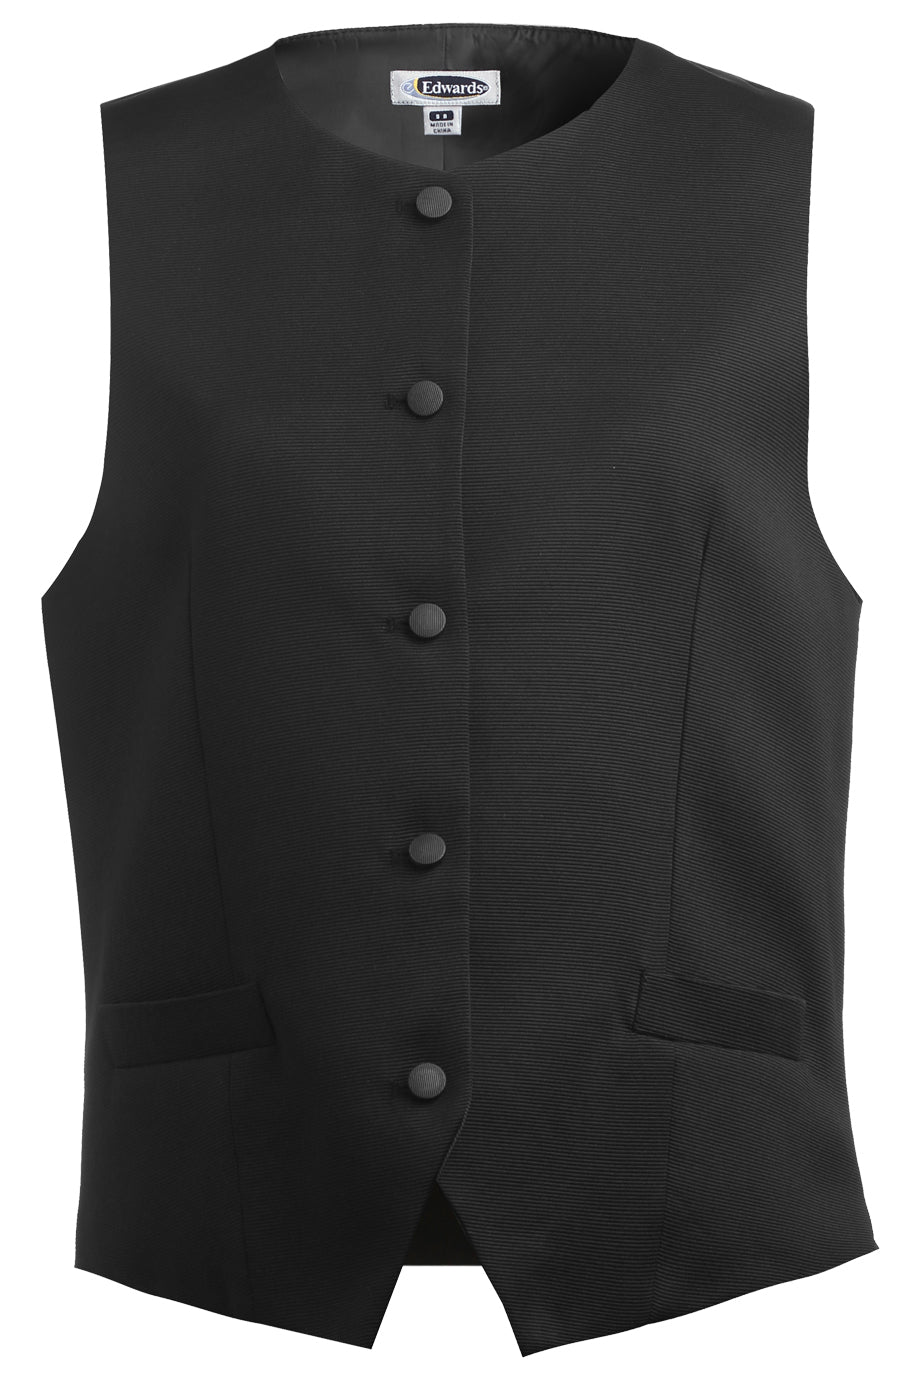 Edwards Ladies Bistro Vest